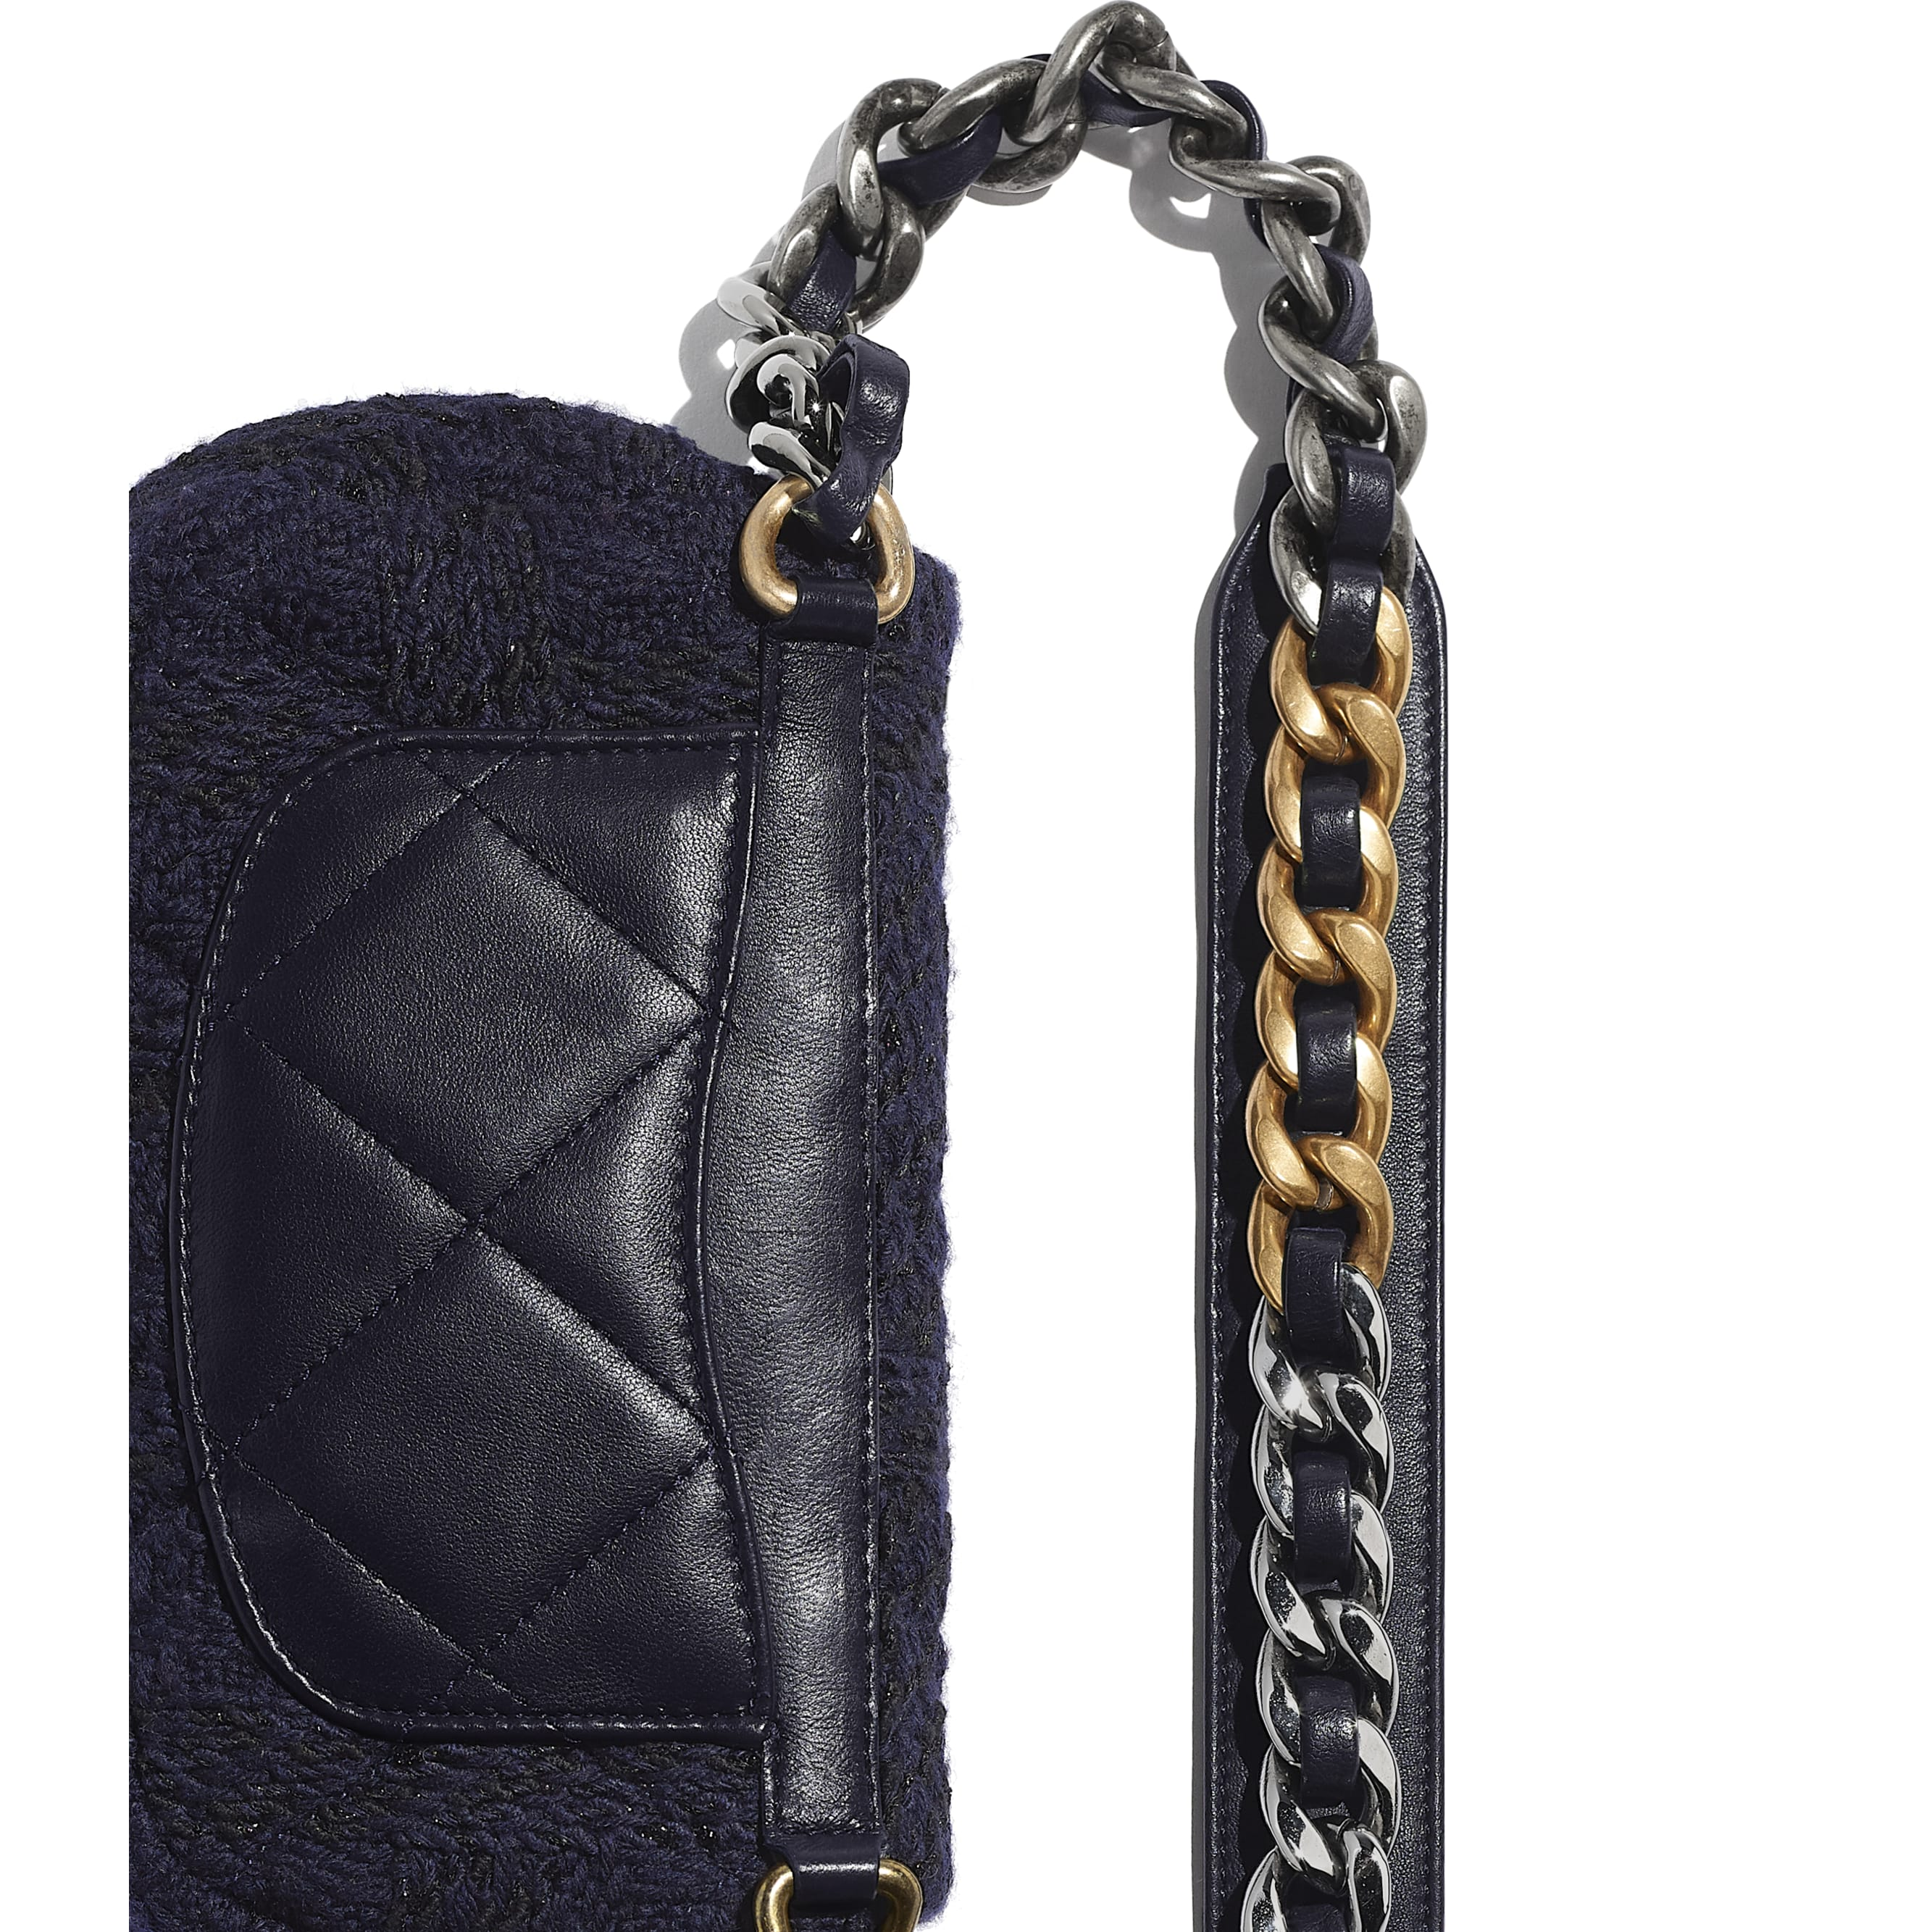 CHANEL 19 Waist Bag - Navy Blue & Black - Wool Tweed, Gold-Tone, Silver-Tone & Ruthenium-Finish Metal - Extra view - see standard sized version